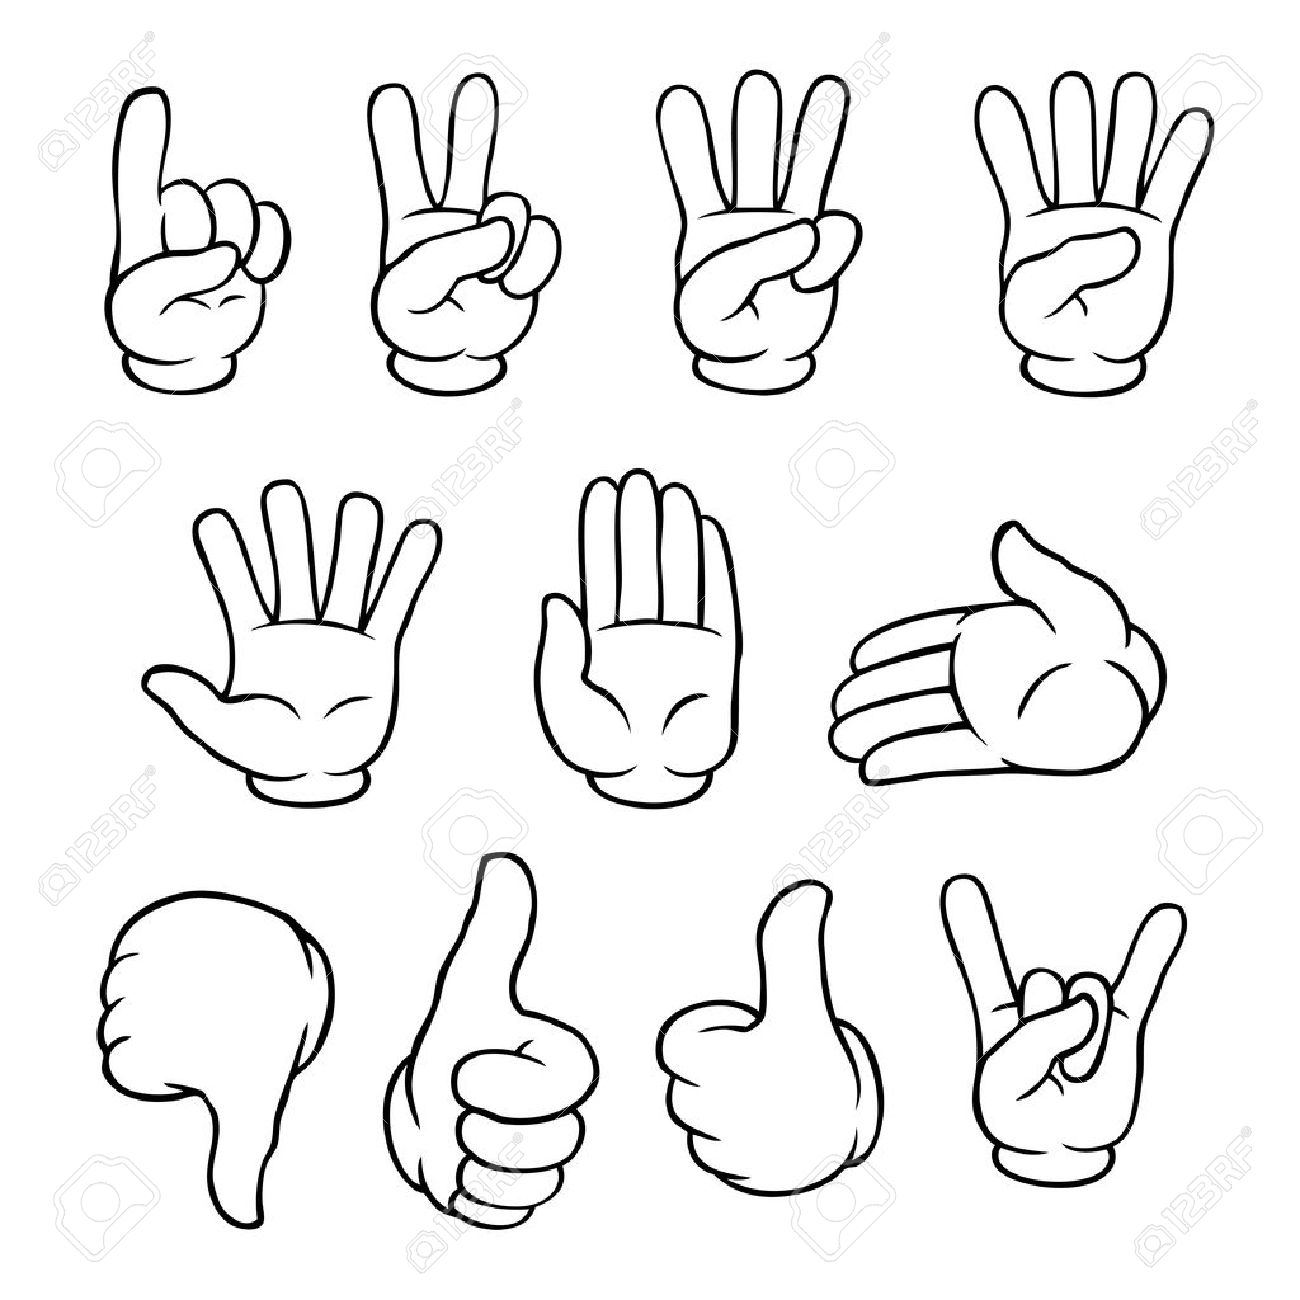 set of black and white cartoon hands showing various gestures royalty free cliparts vectors and stock illustration image 22772719 set of black and white cartoon hands showing various gestures